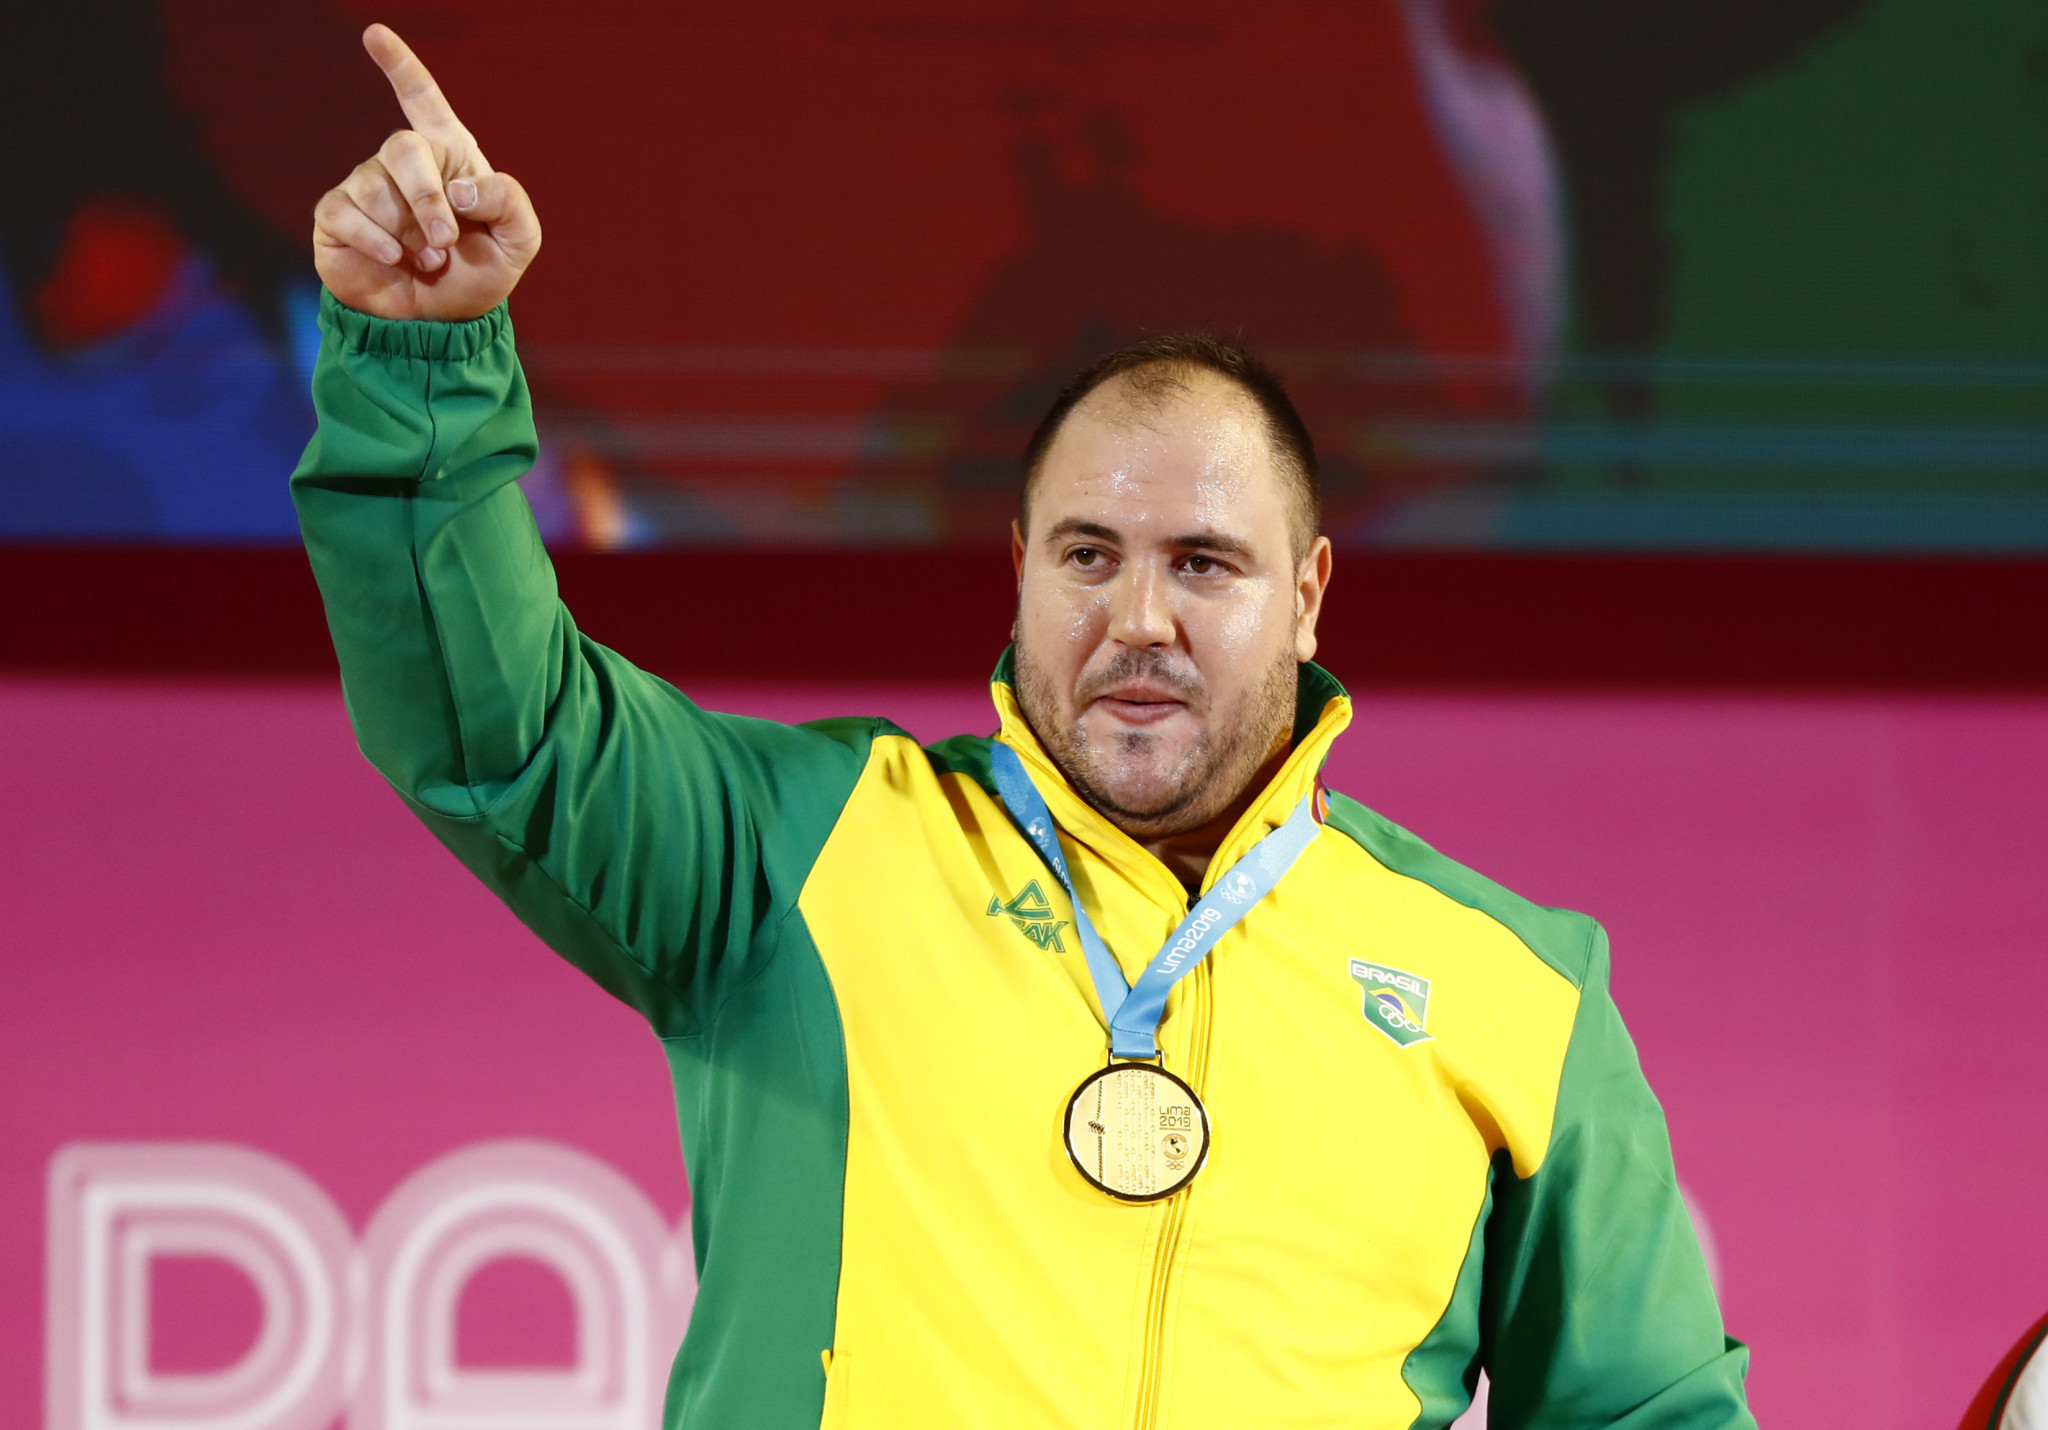 Brazil's Saraiva Reis earns third consecutive Pan American Games title as weightlifting concludes